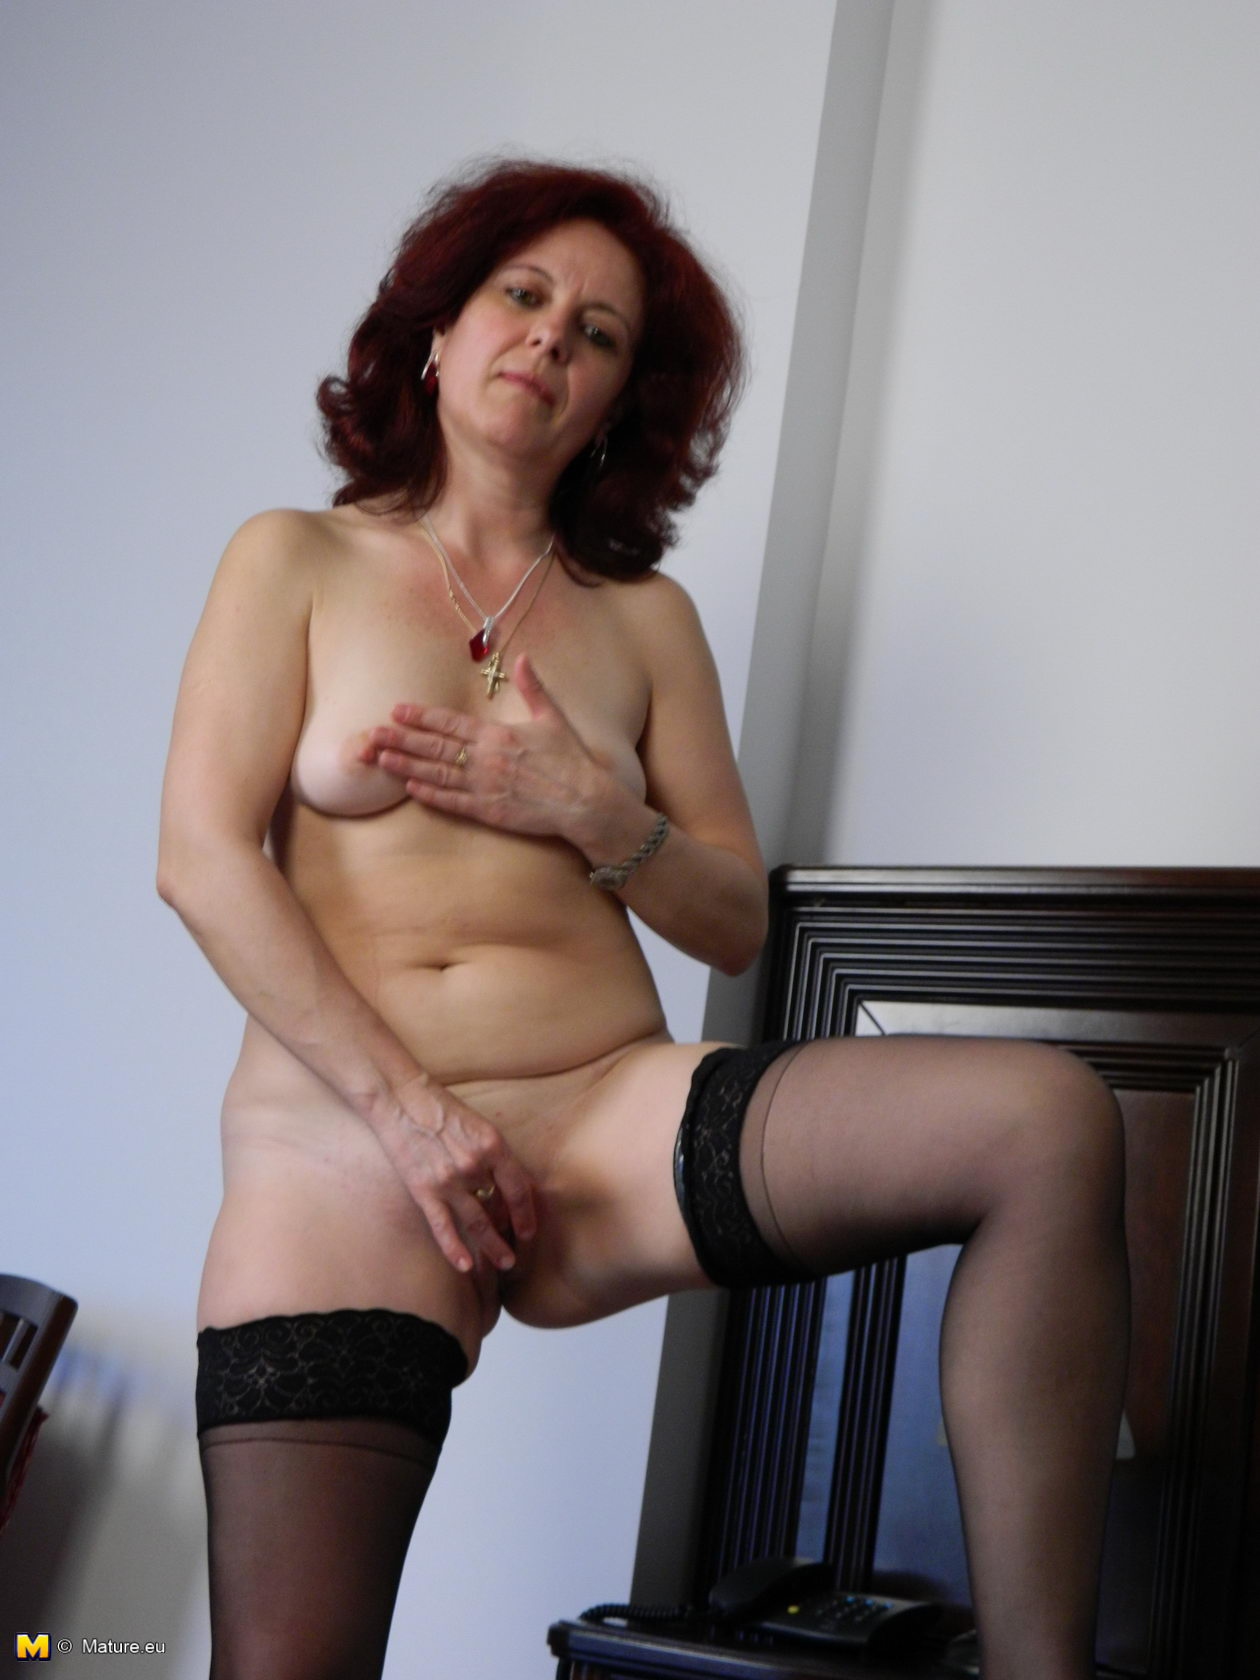 Mature sex naked horny fuck women mom